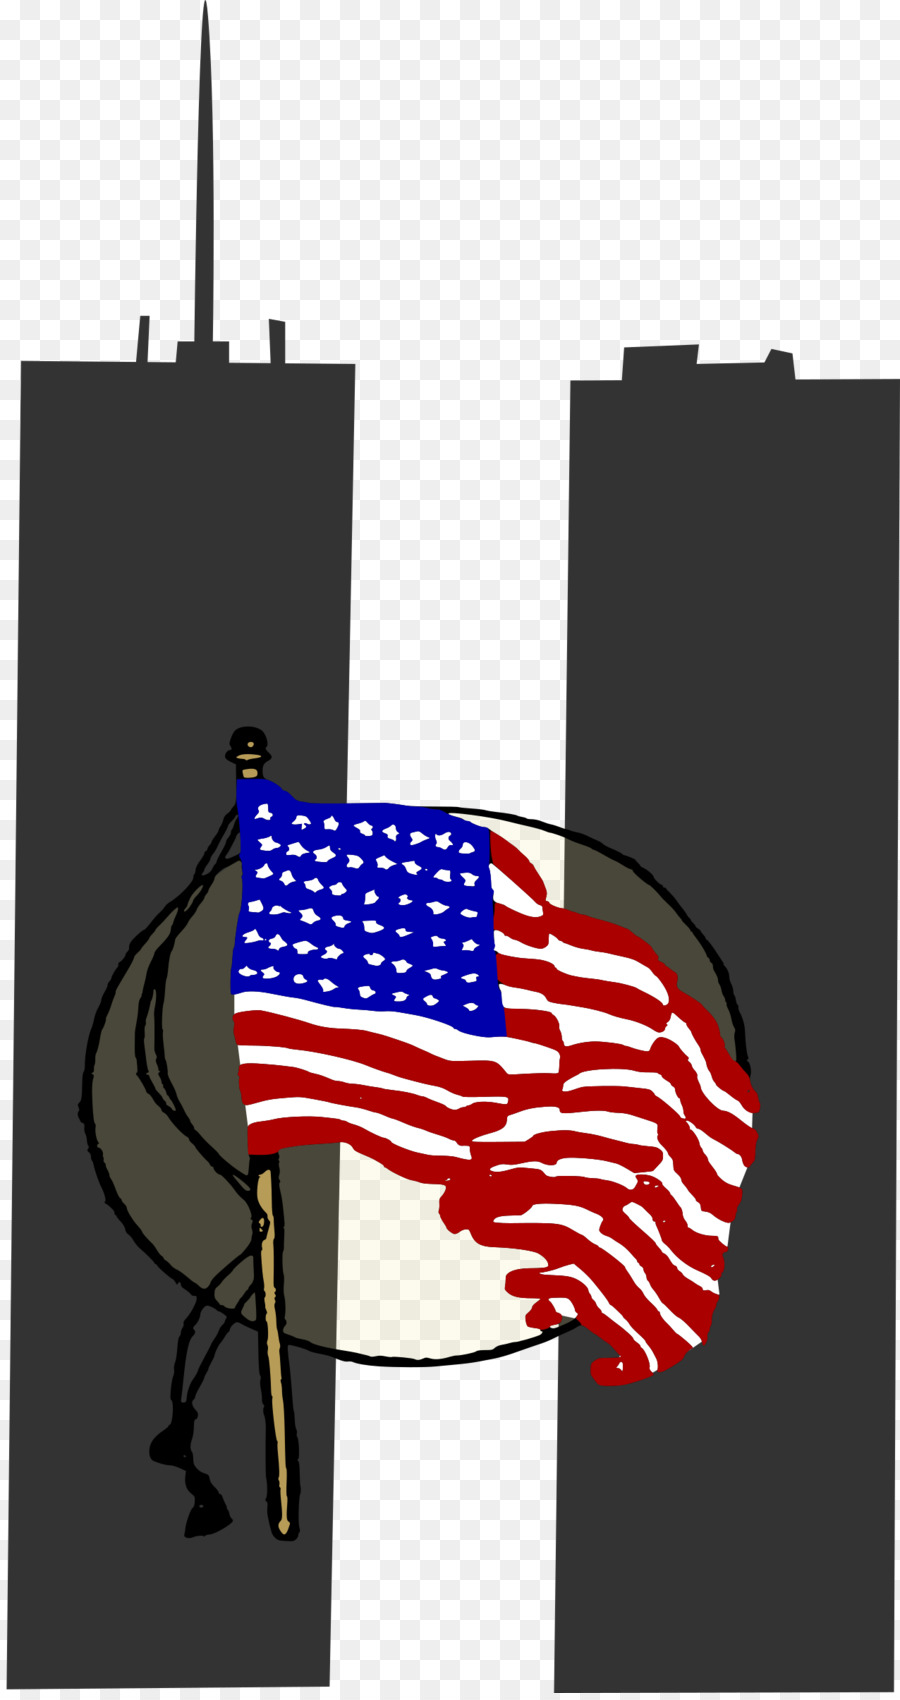 Patriot day free clipart clipart royalty free stock Patriot Day png download - 1276*2400 - Free Transparent National ... clipart royalty free stock